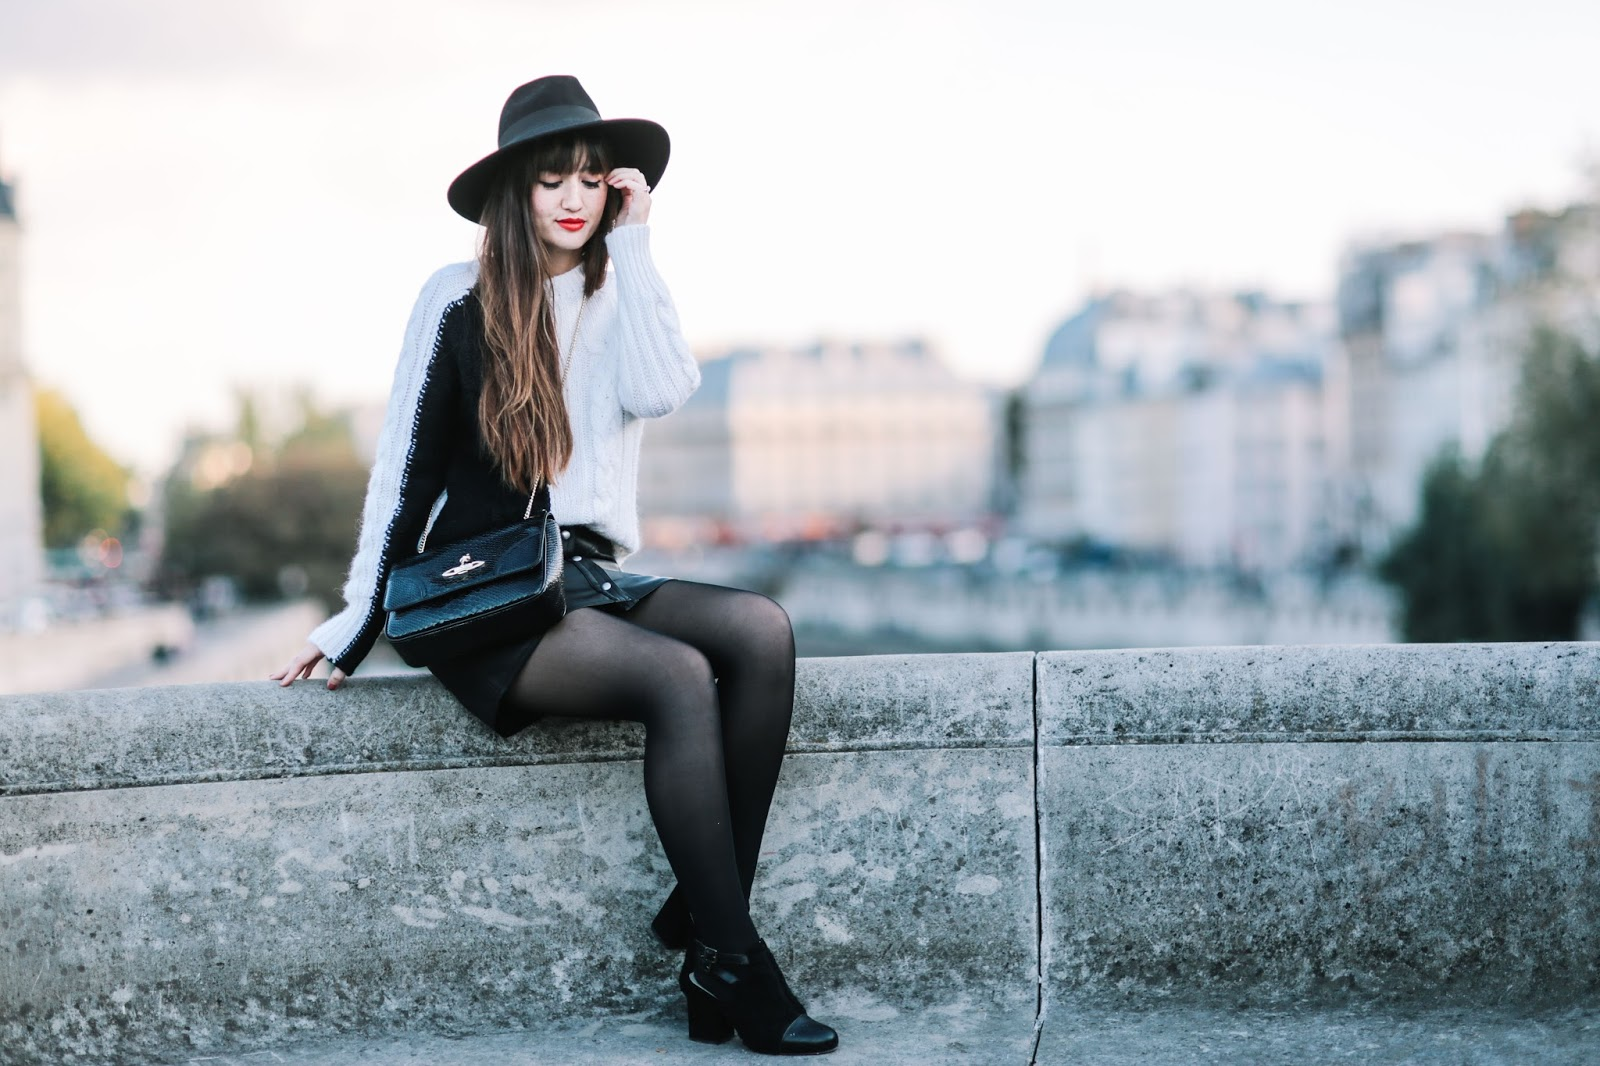 chic Parisian style, street style, look, mode, blogger, fashion, cool, meetmeinparee